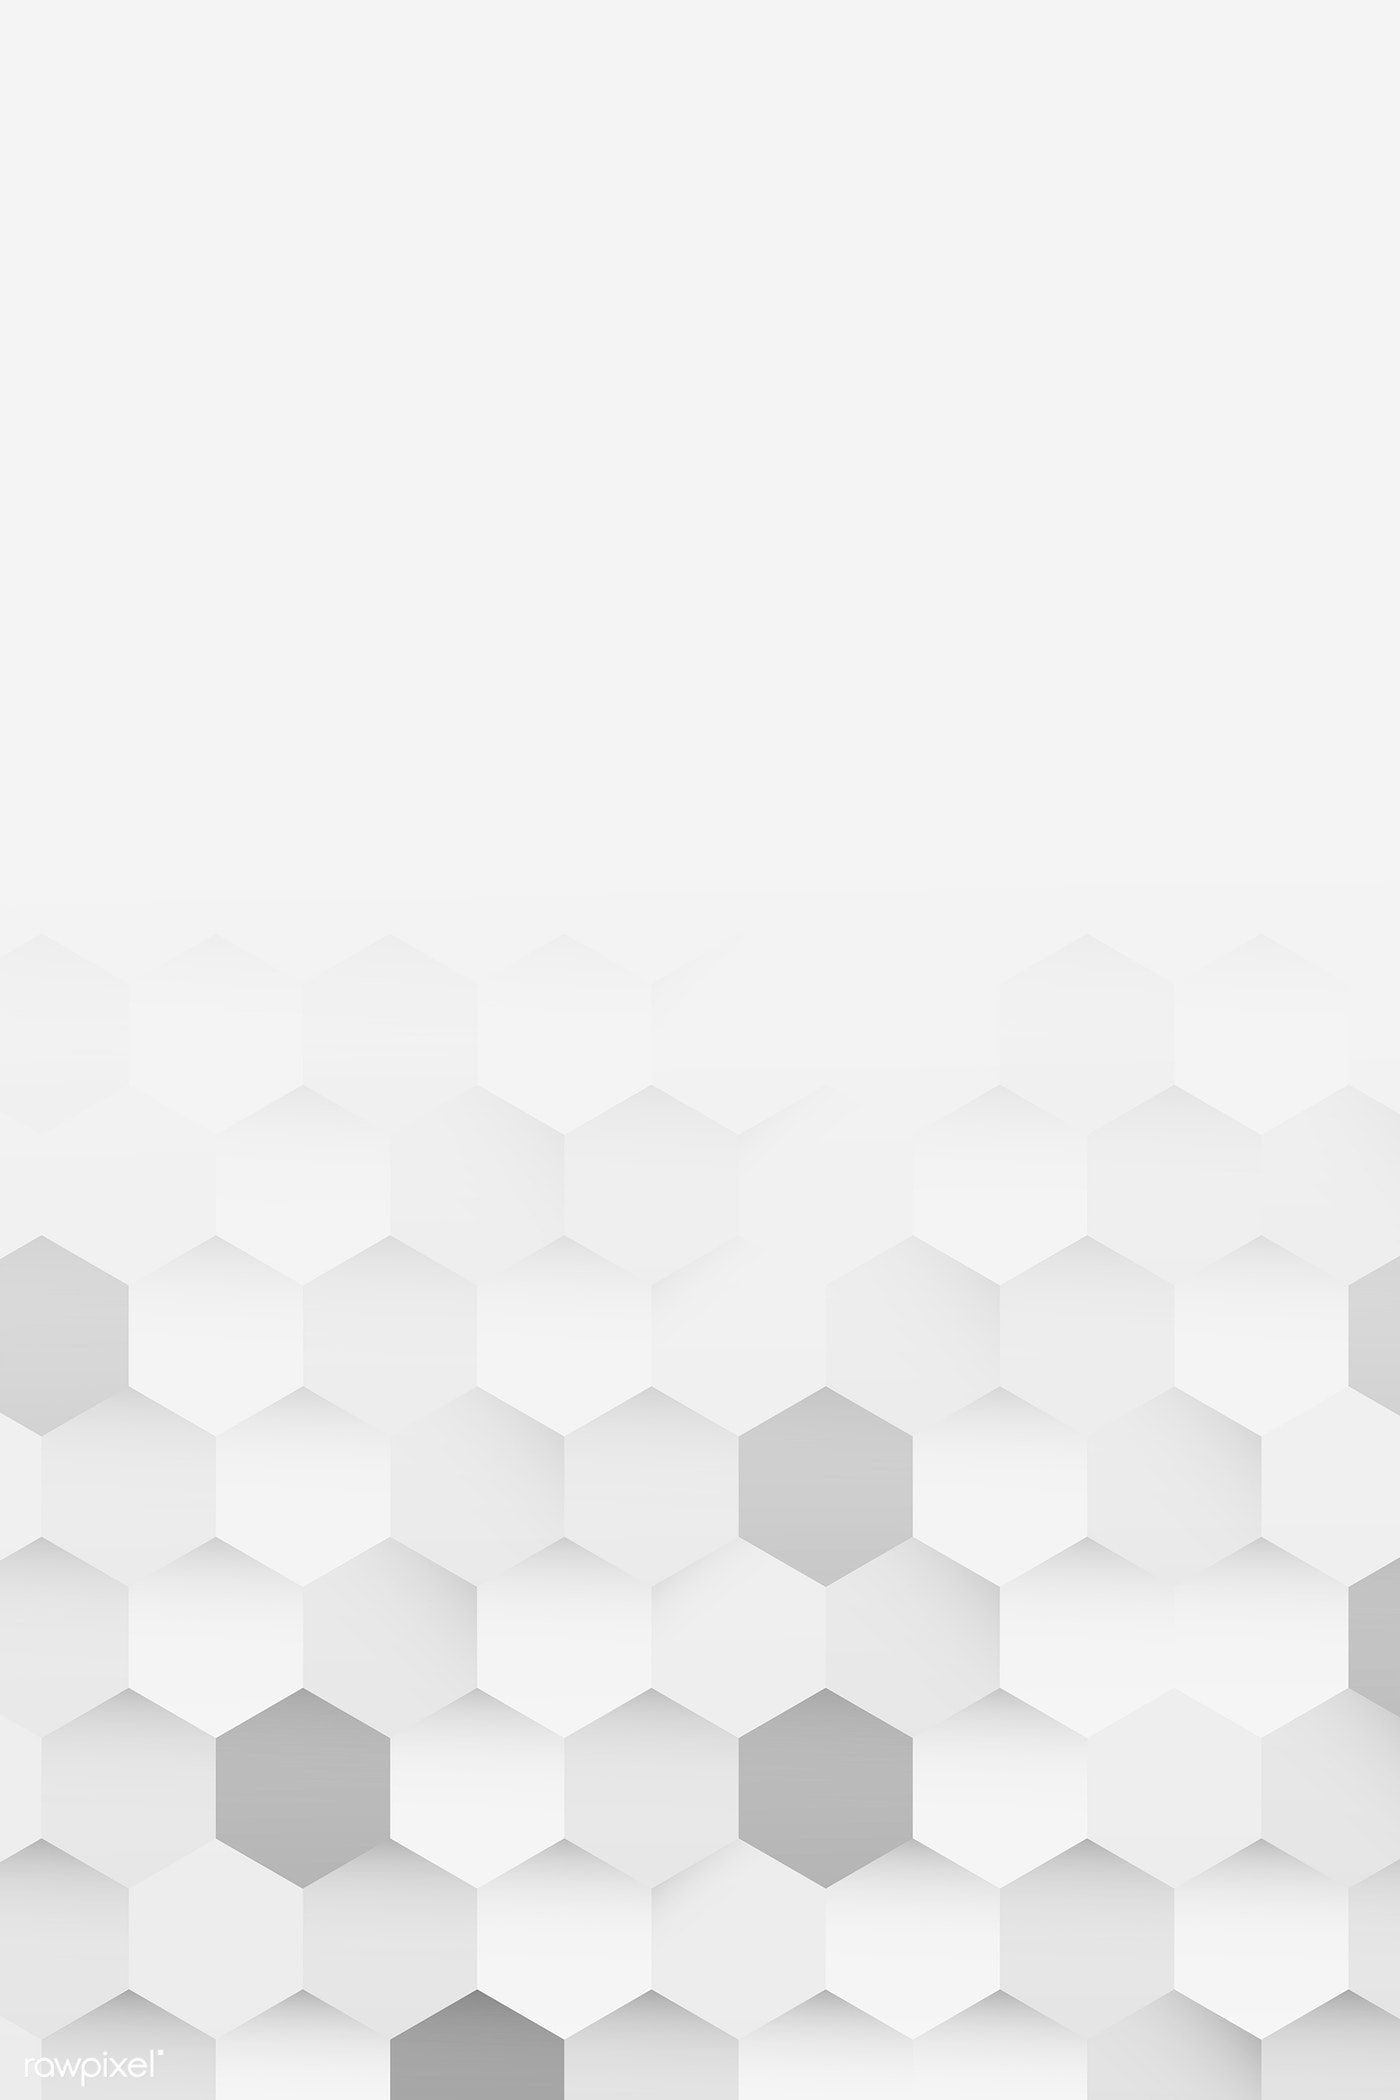 Download Premium Vector Of White And Gray Hexagon Pattern Background